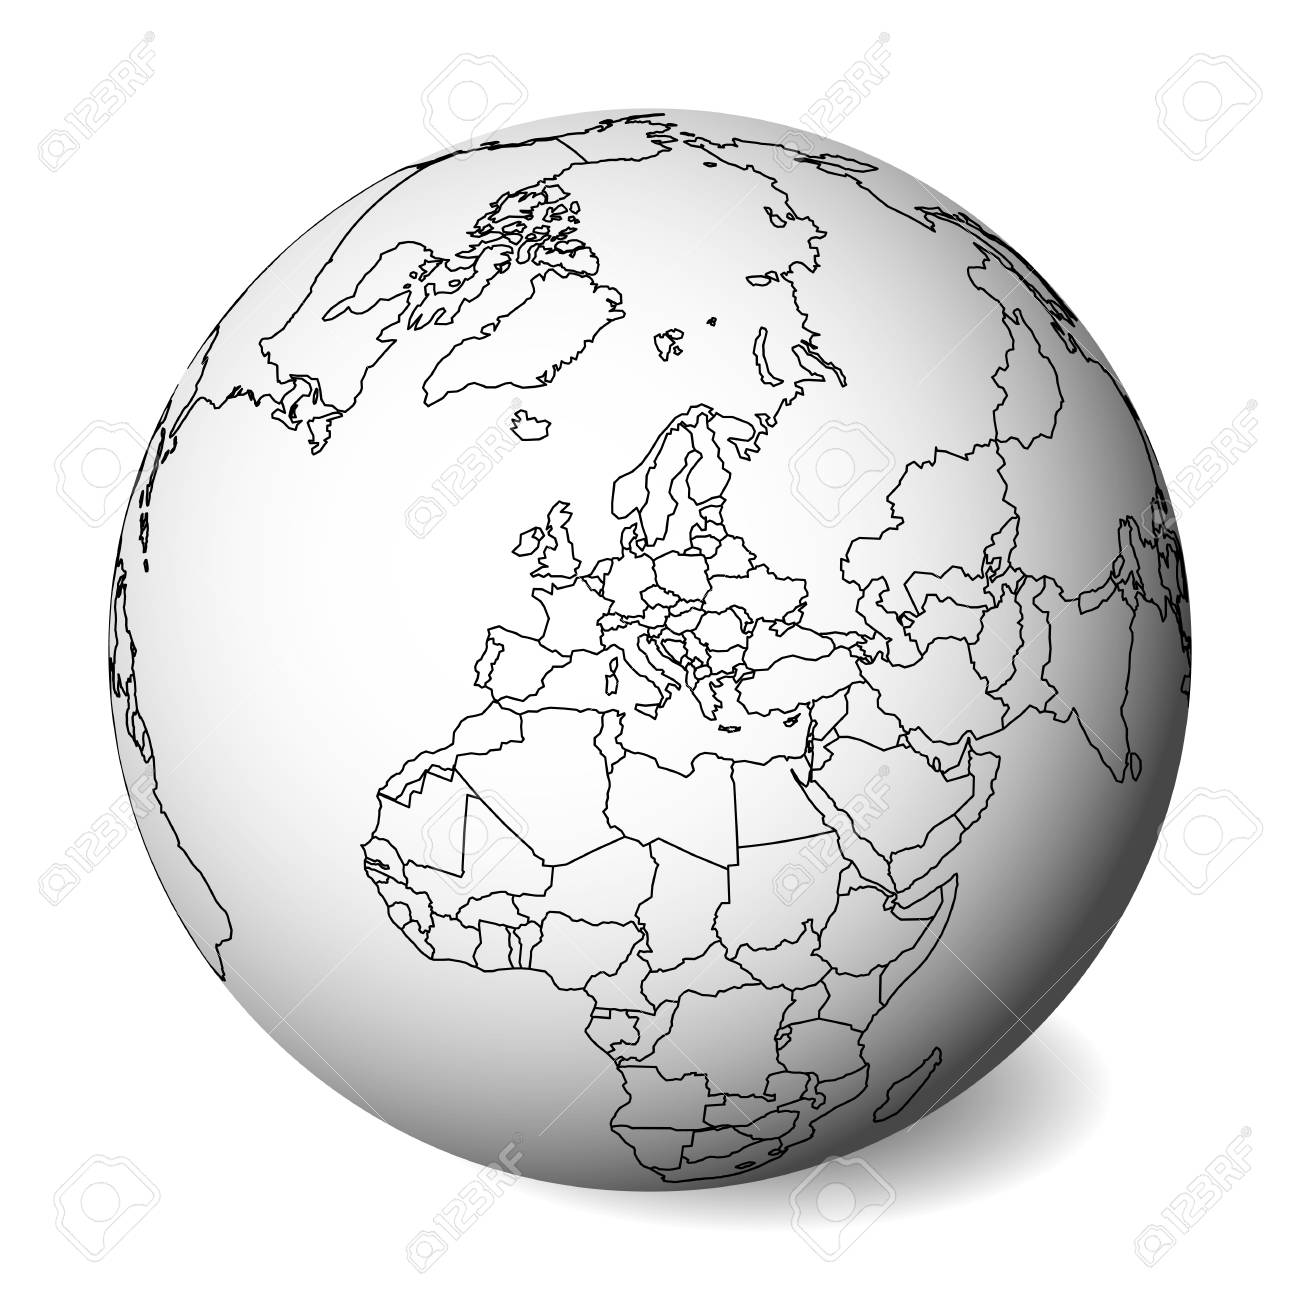 Blank political map of Europe. 3D Earth globe with black outline..